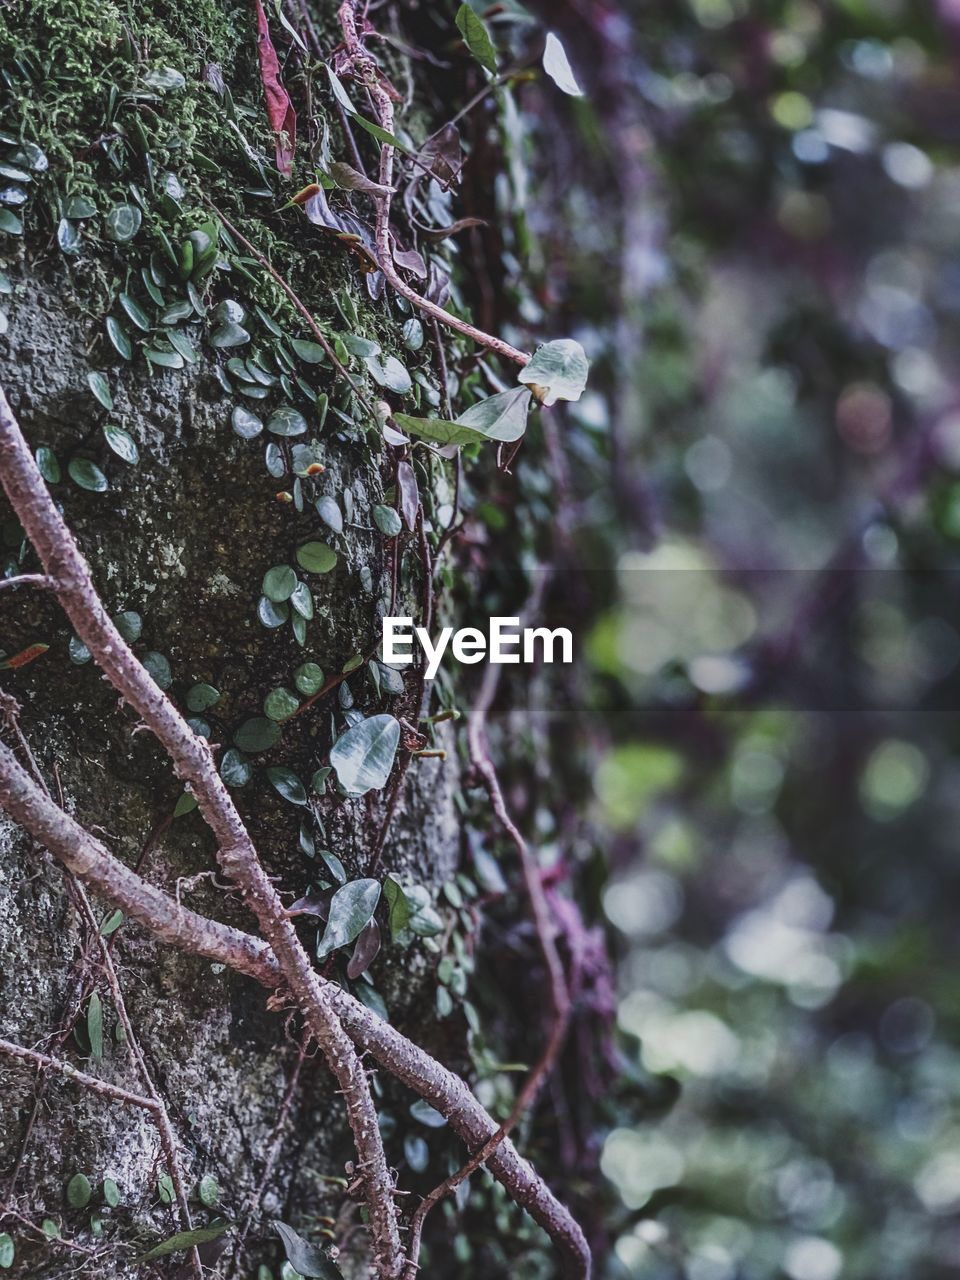 plant, tree, trunk, tree trunk, growth, focus on foreground, close-up, day, moss, nature, no people, forest, beauty in nature, branch, tranquility, outdoors, land, selective focus, green color, textured, lichen, bark